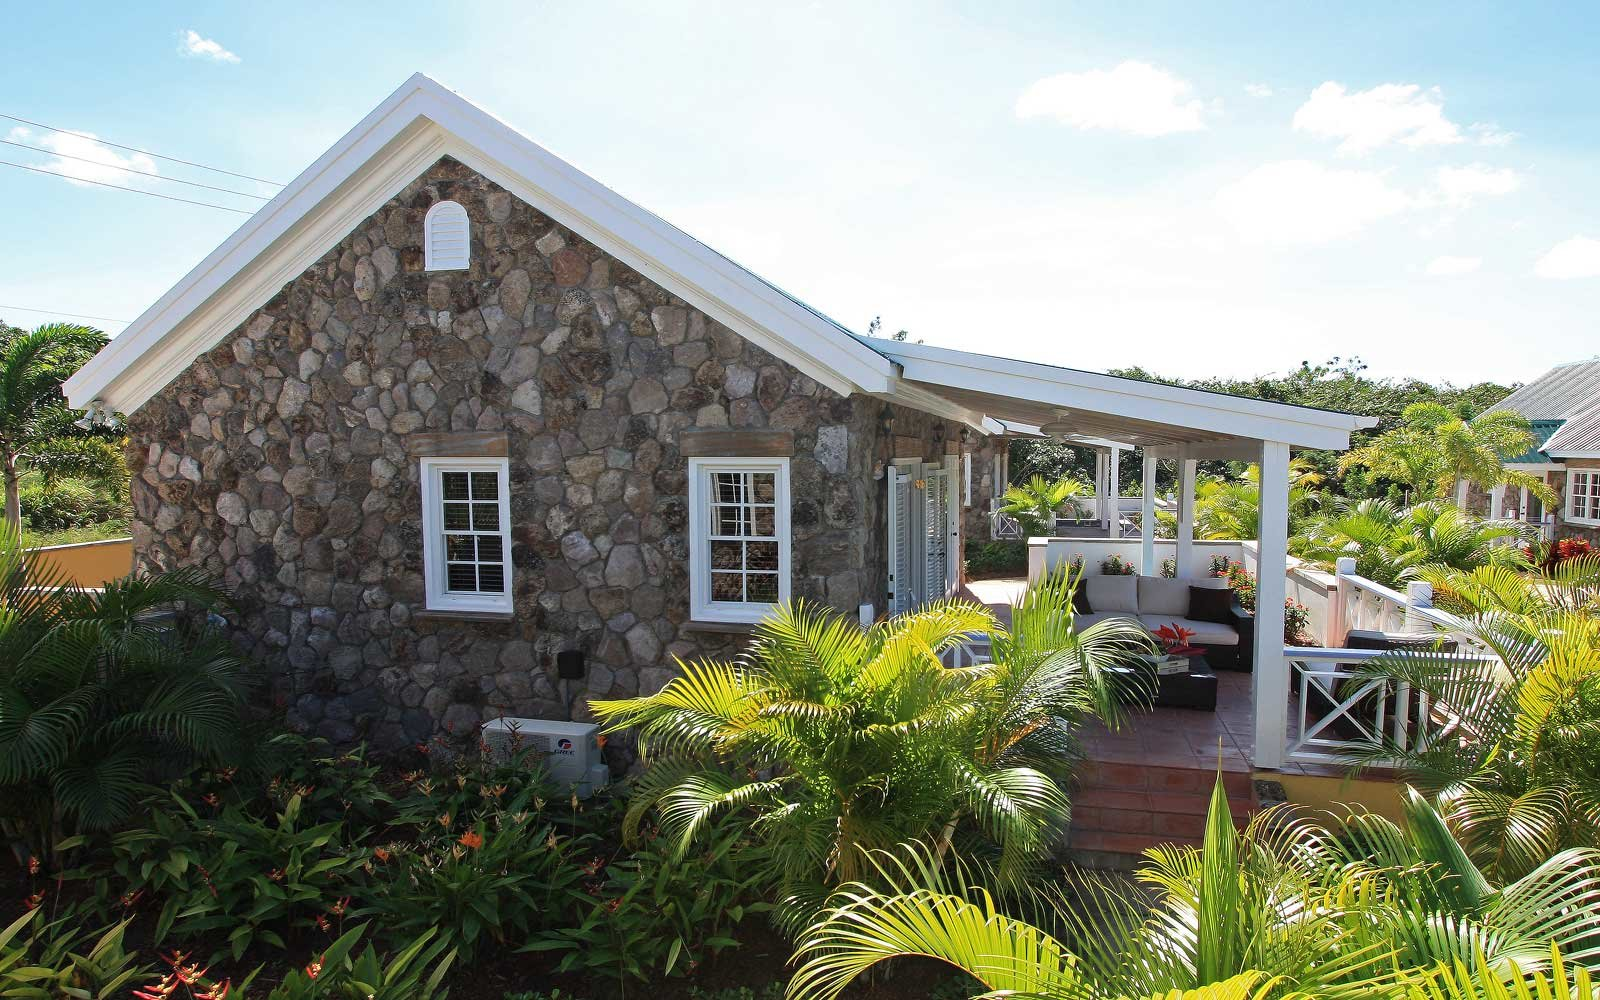 St. Kitts and Nevis Airbnb